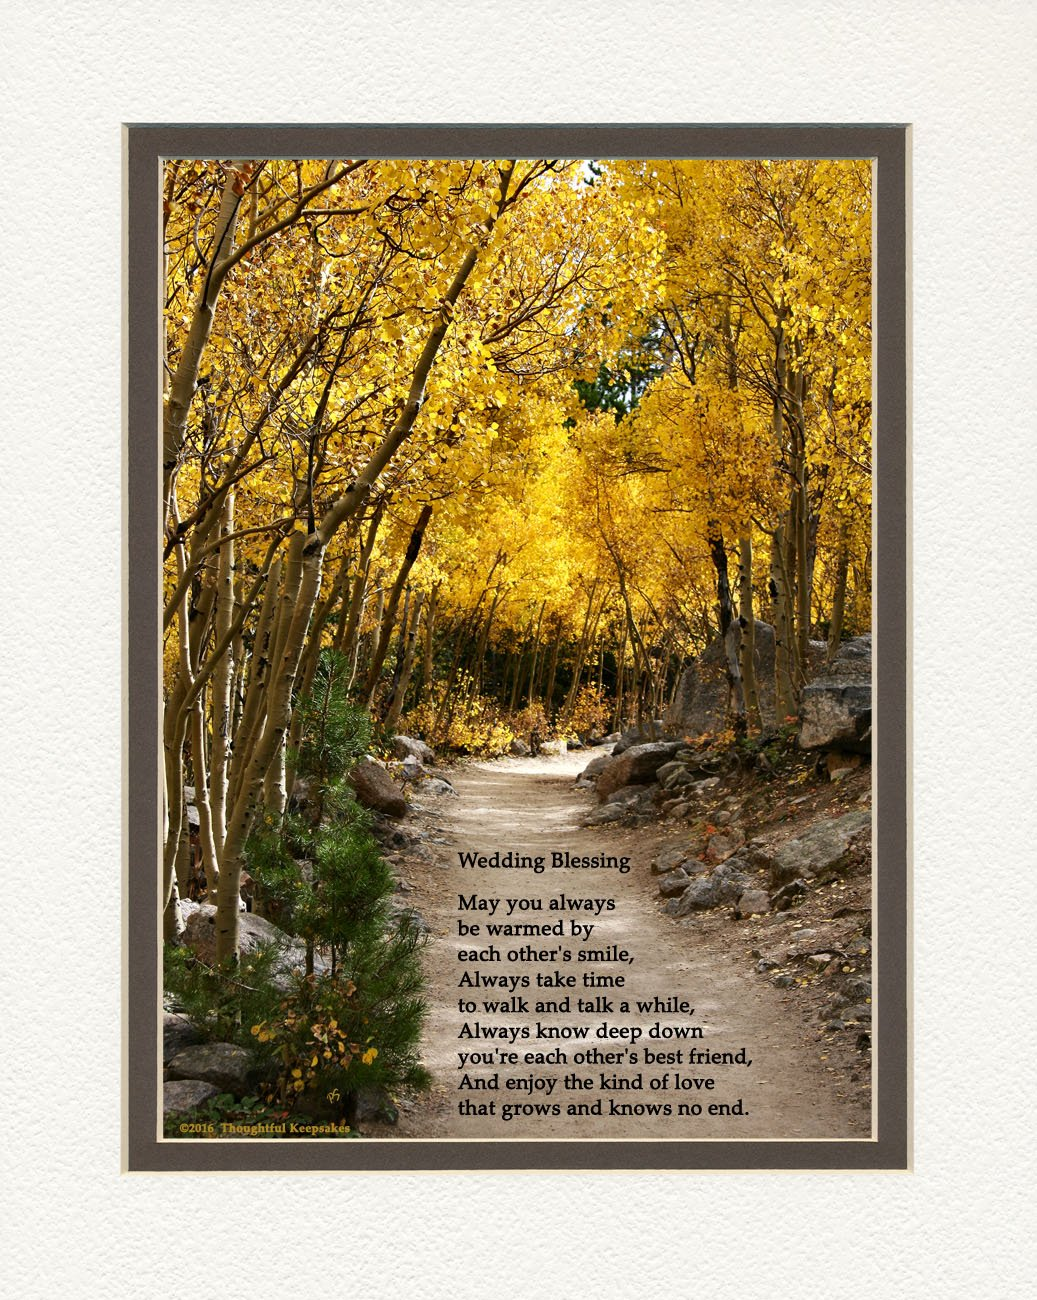 Wedding Gift for the Couple with Wedding Blessing Poem. Aspen Path Photo, 8x10 Double Matted. Special Wedding Keepsake for the Bride and Groom. by Anniversary & Wedding Gifts